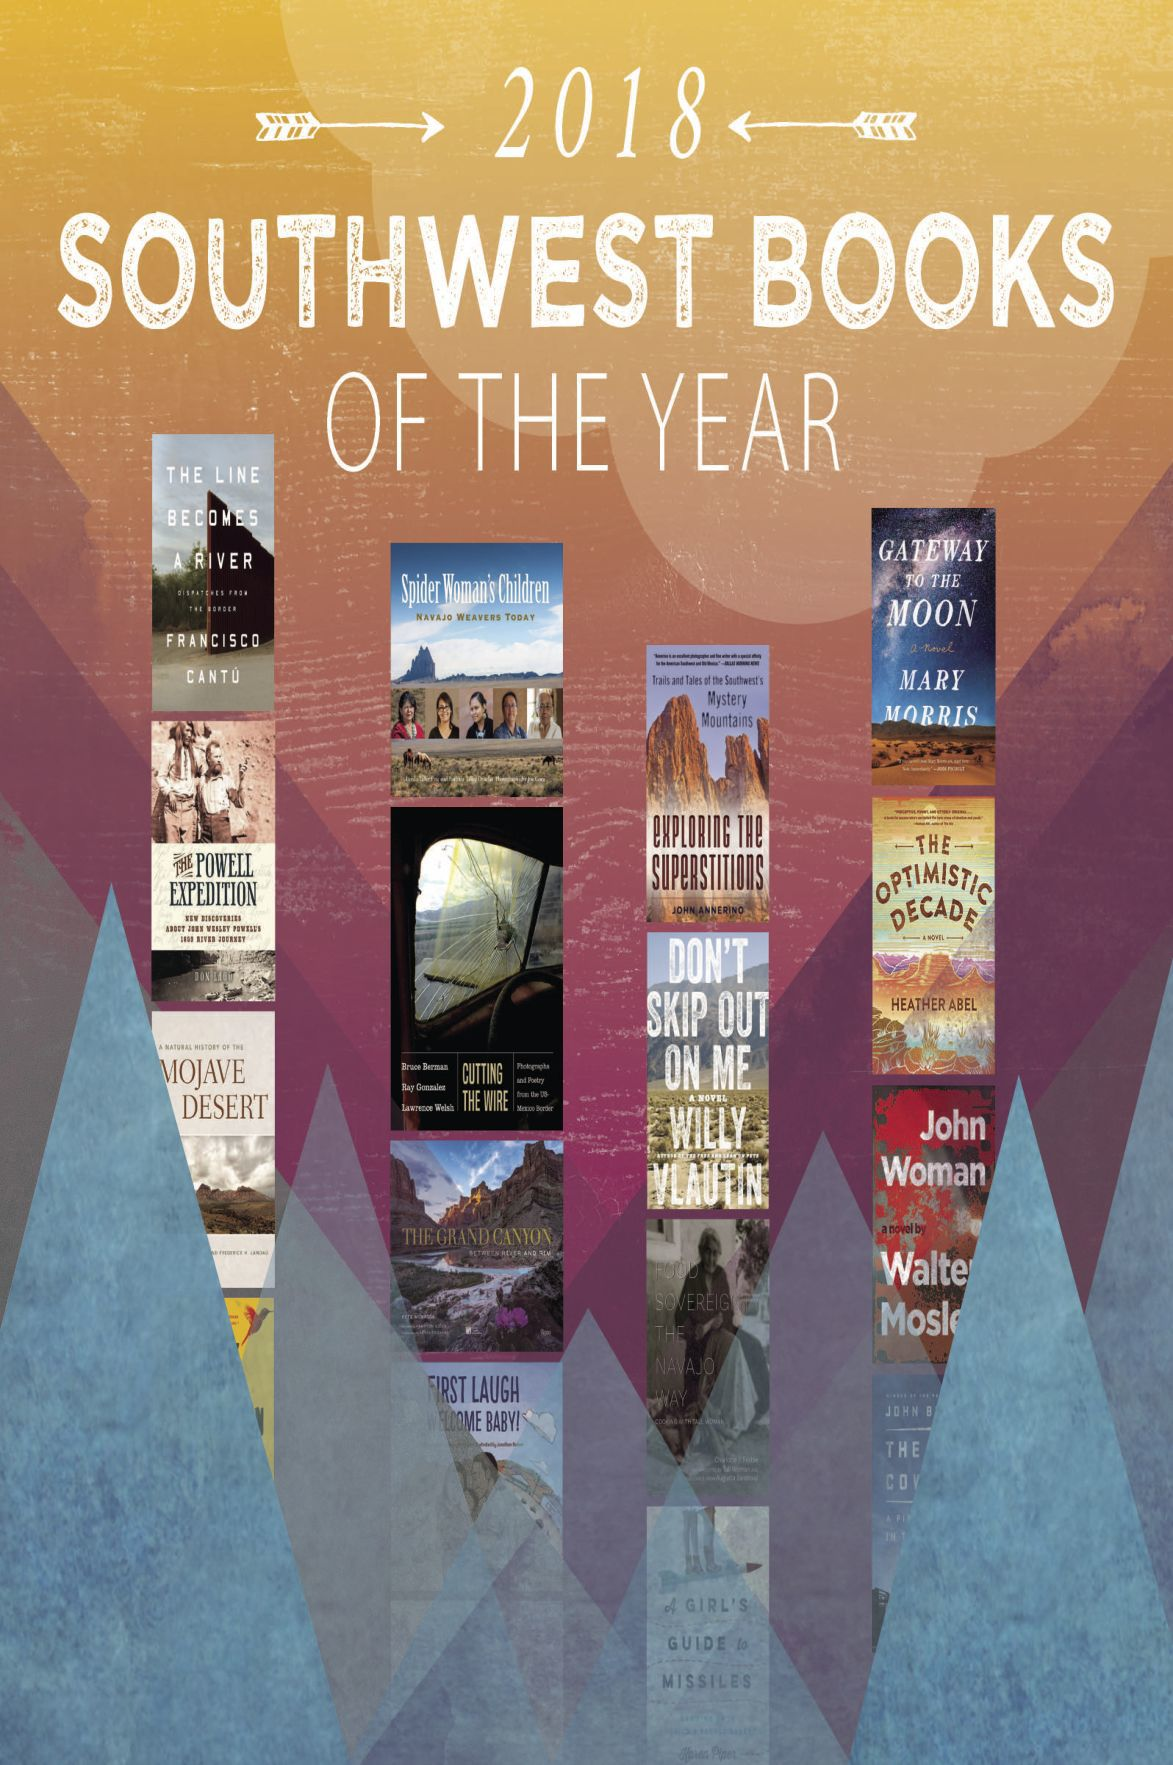 2018 Southwest Books of the Year